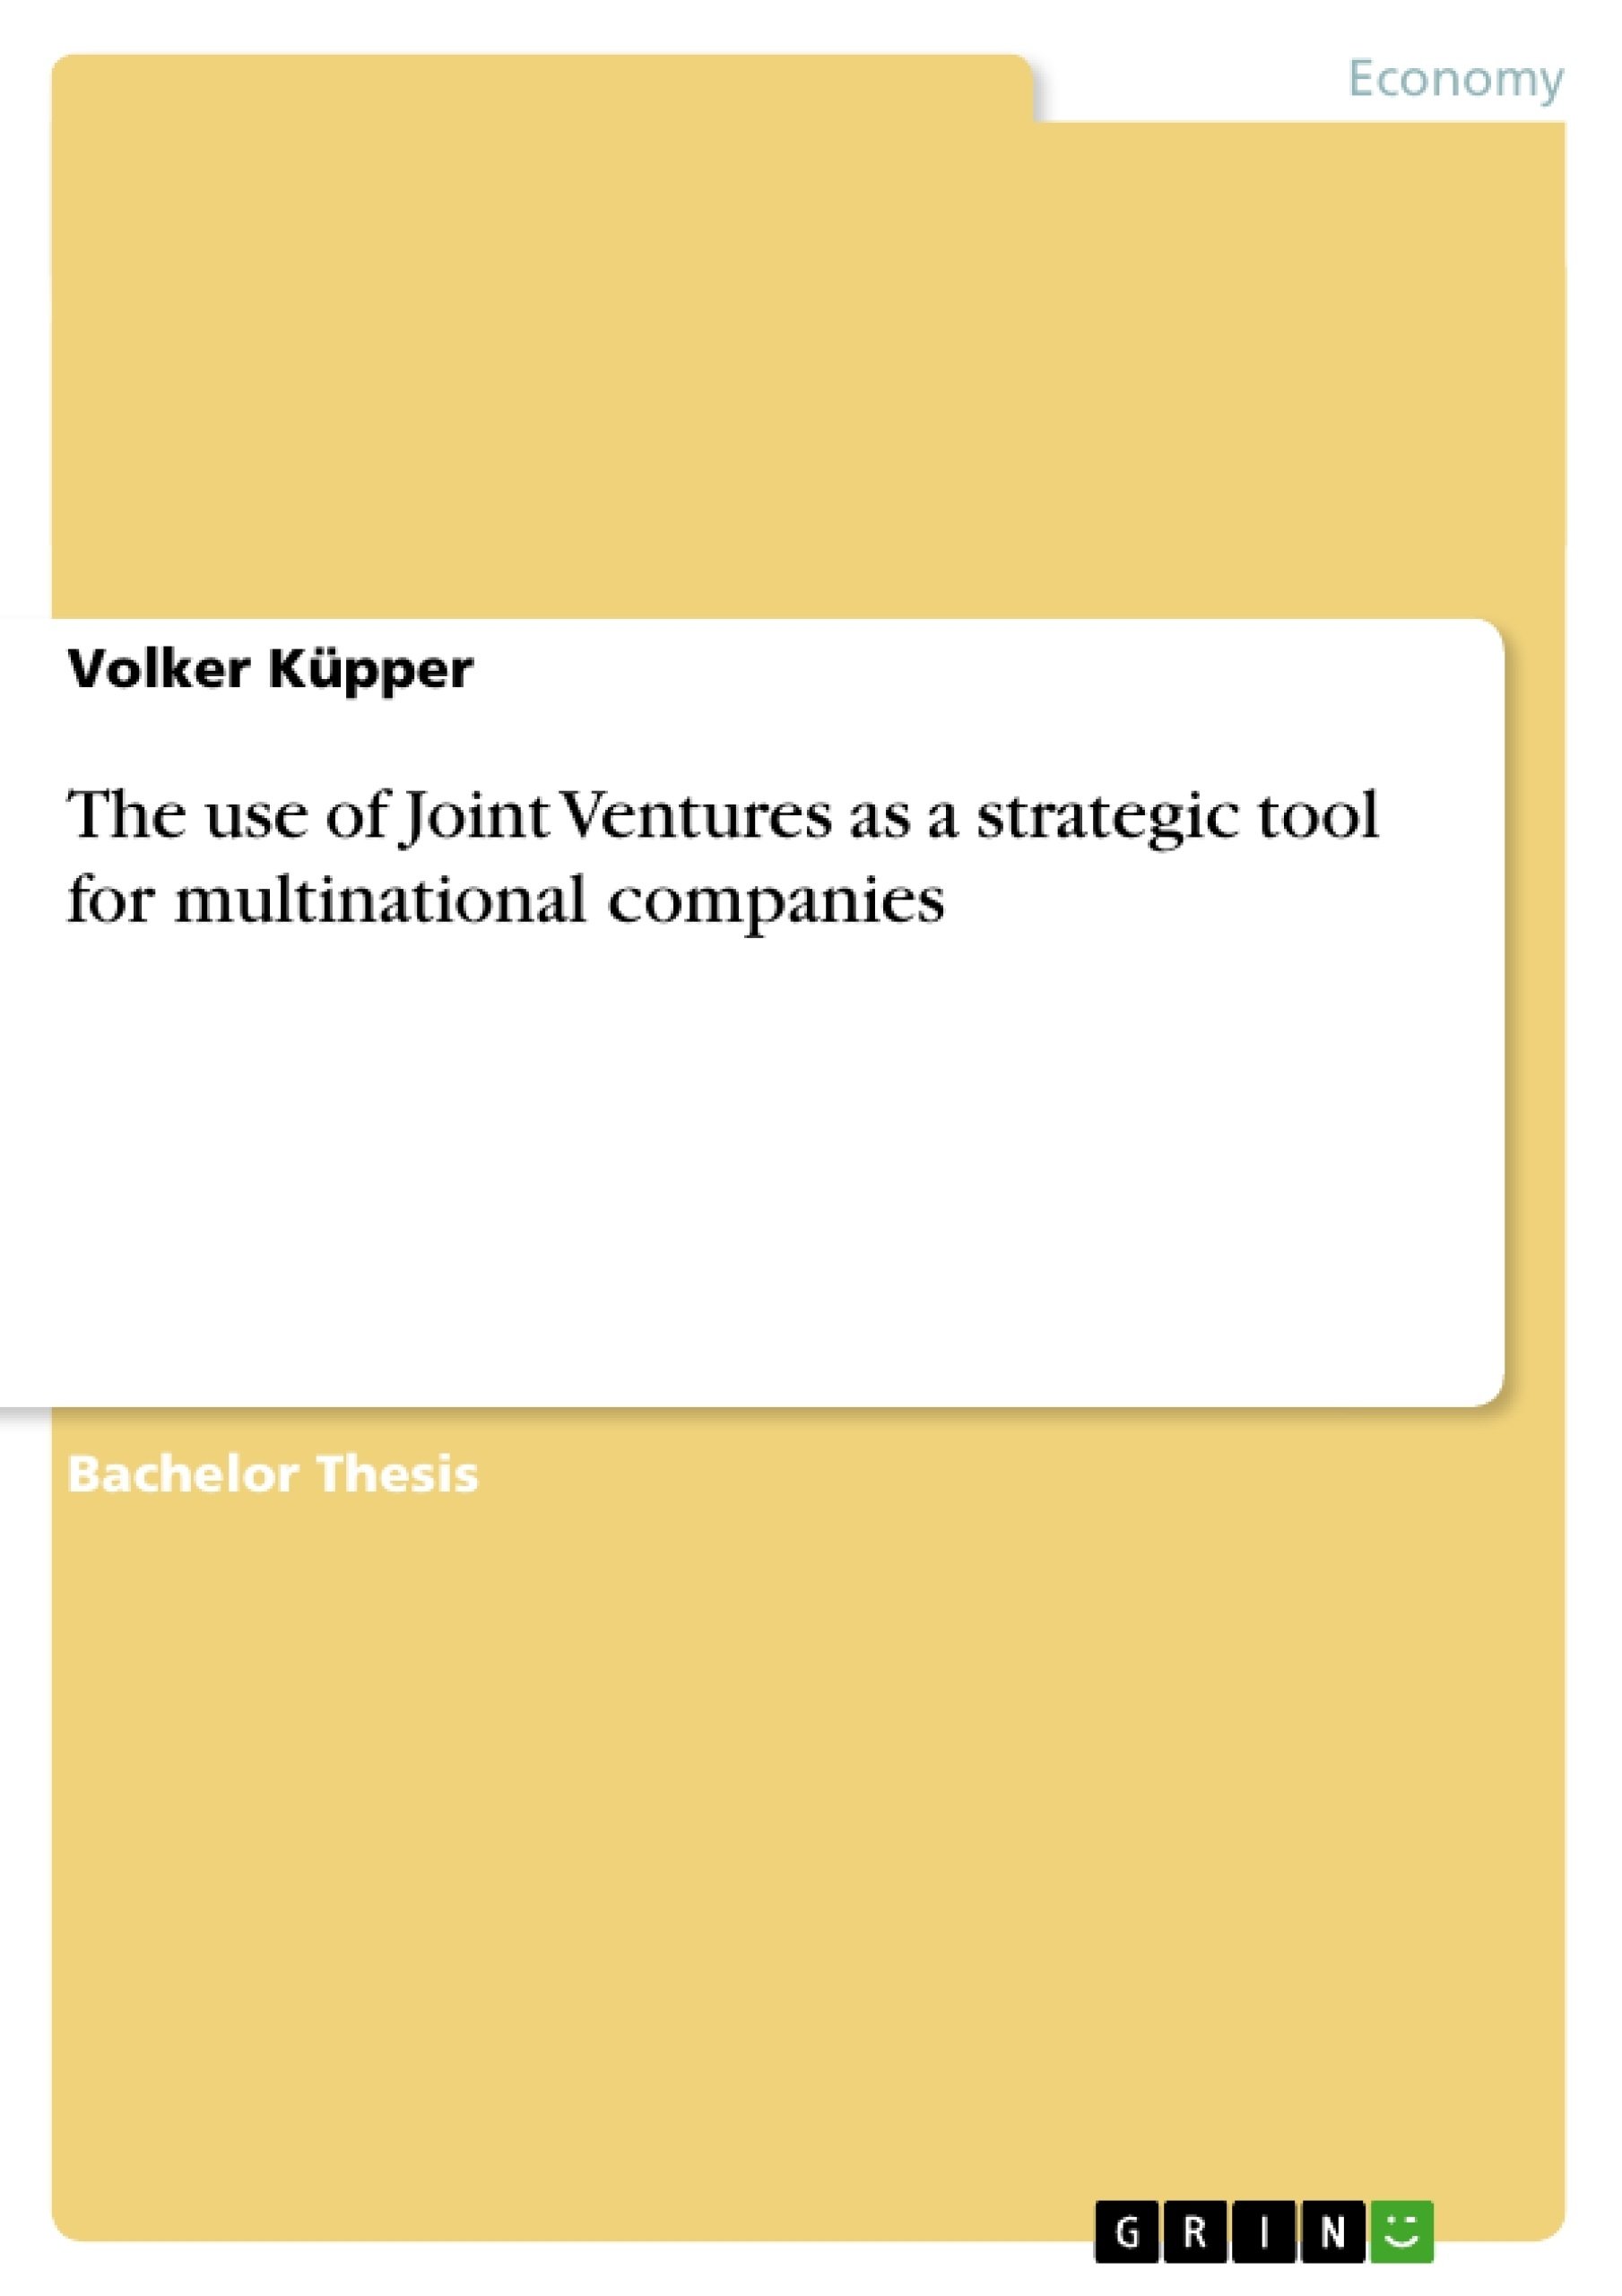 Title: The use of Joint Ventures as a strategic tool for multinational companies